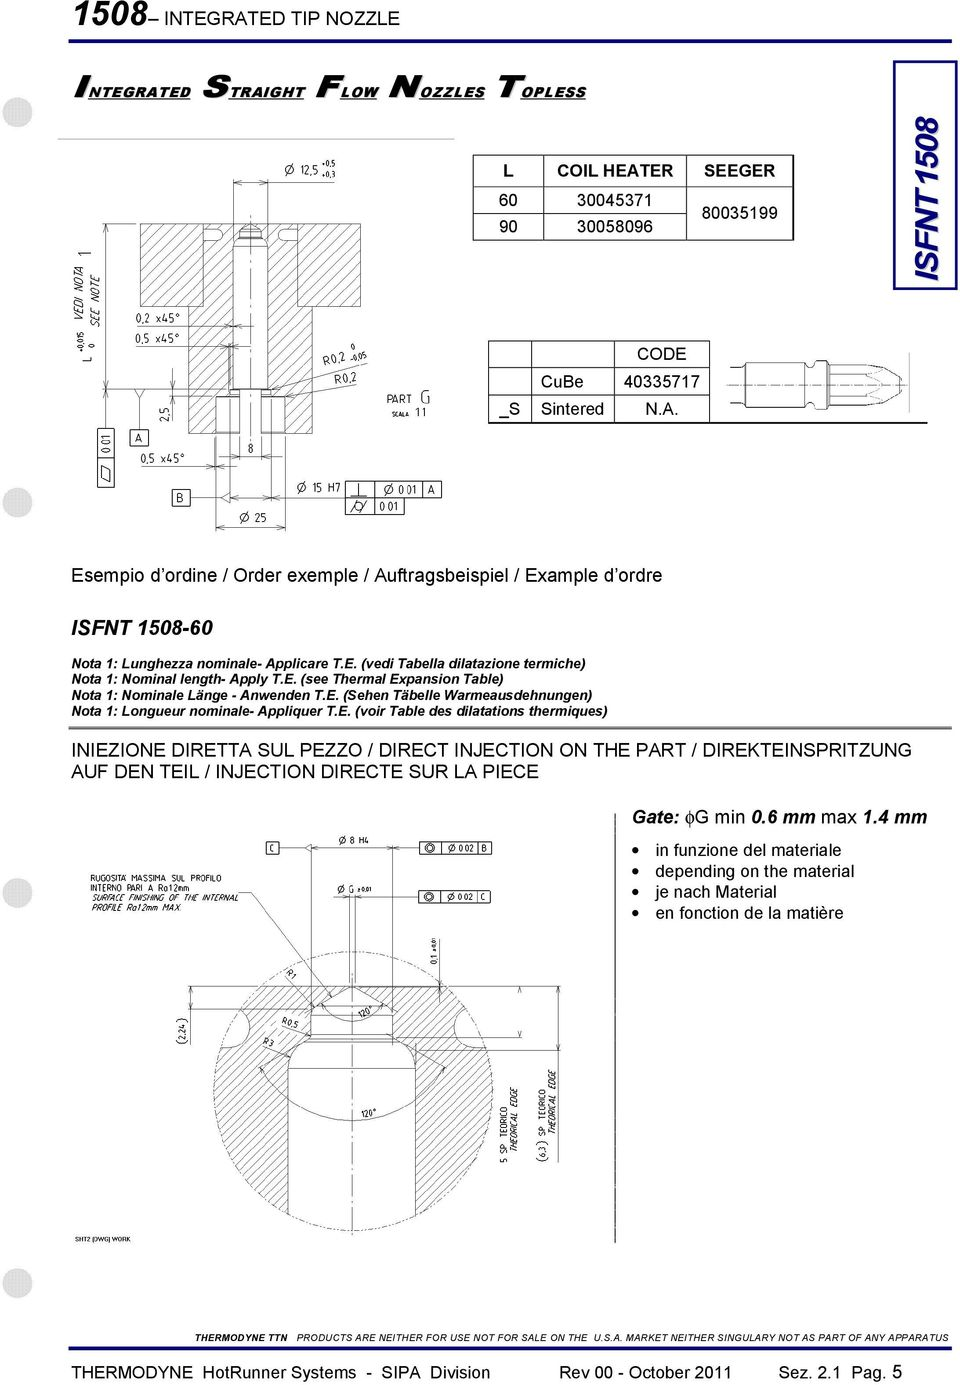 E. (voir Table des dilatations thermiques) INIEZIONE DIRETTA SUL PEZZO / DIRECT INJECTION ON THE PART / DIREKTEINSPRITZUNG AUF DEN TEIL / INJECTION DIRECTE SUR LA PIECE Gate: φg min 0.